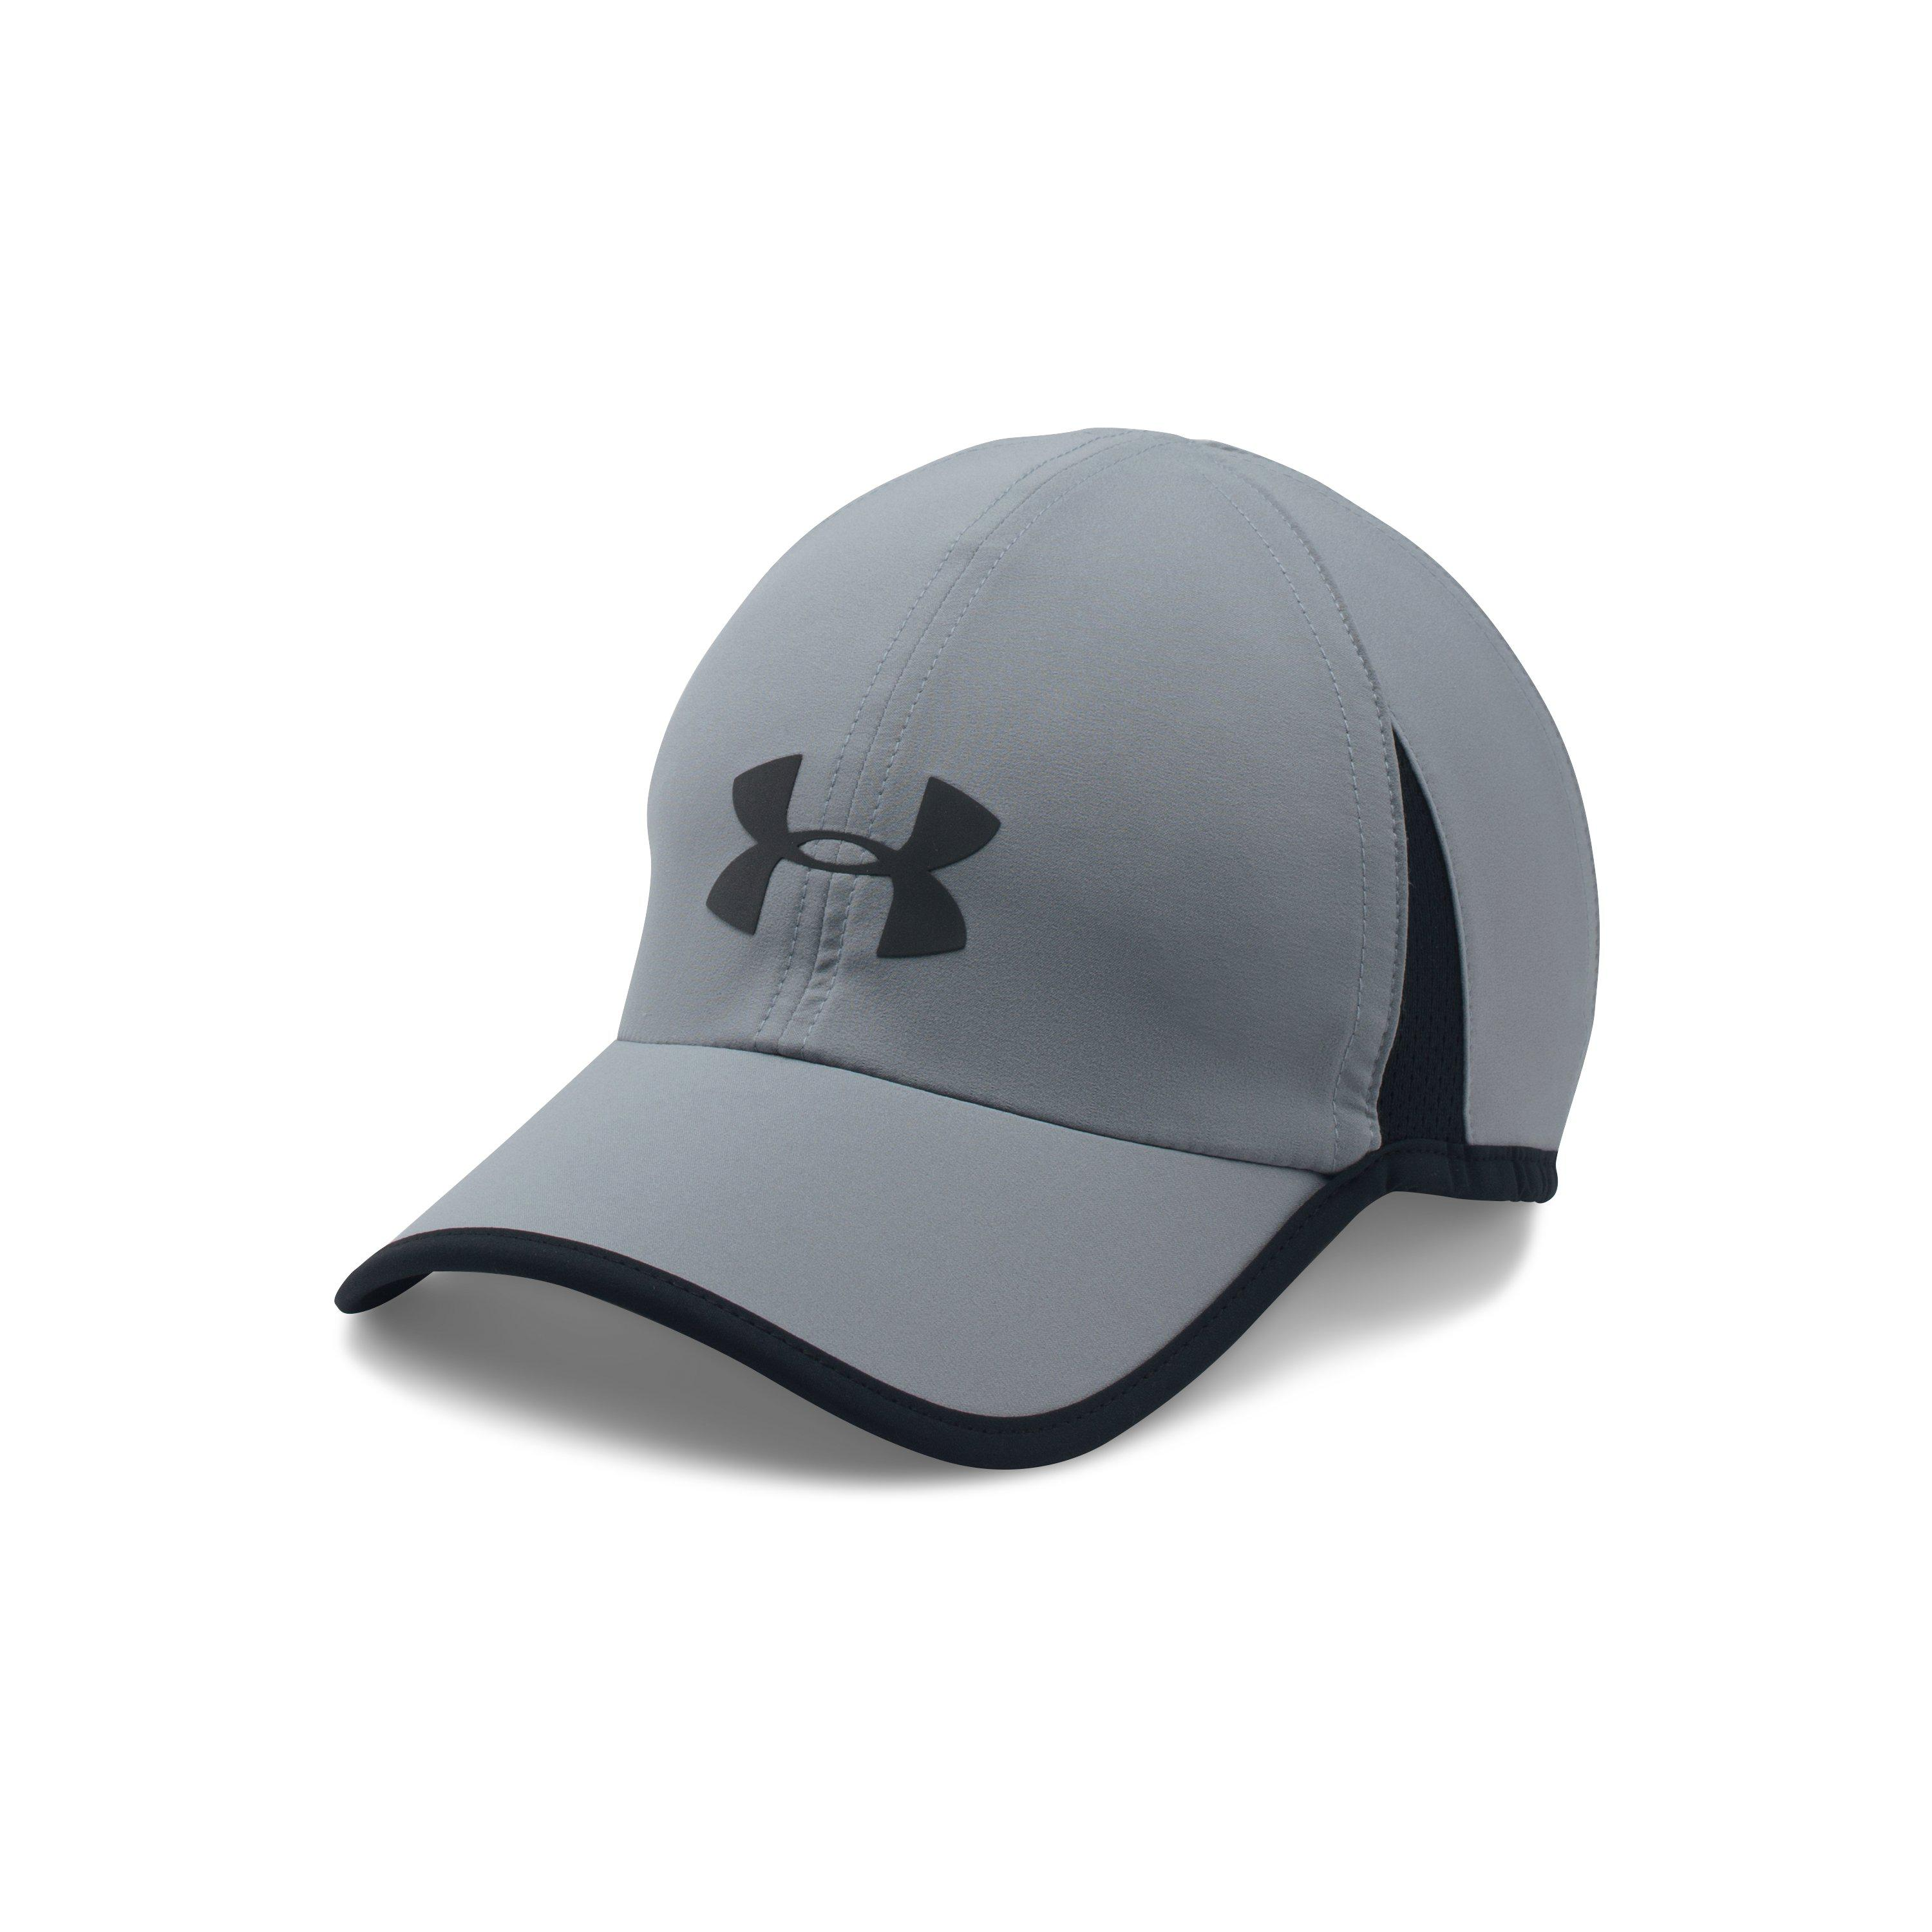 db79a618295 ... low price lyst under armour mens ua shadow 4.0 run cap in gray for men  f046c